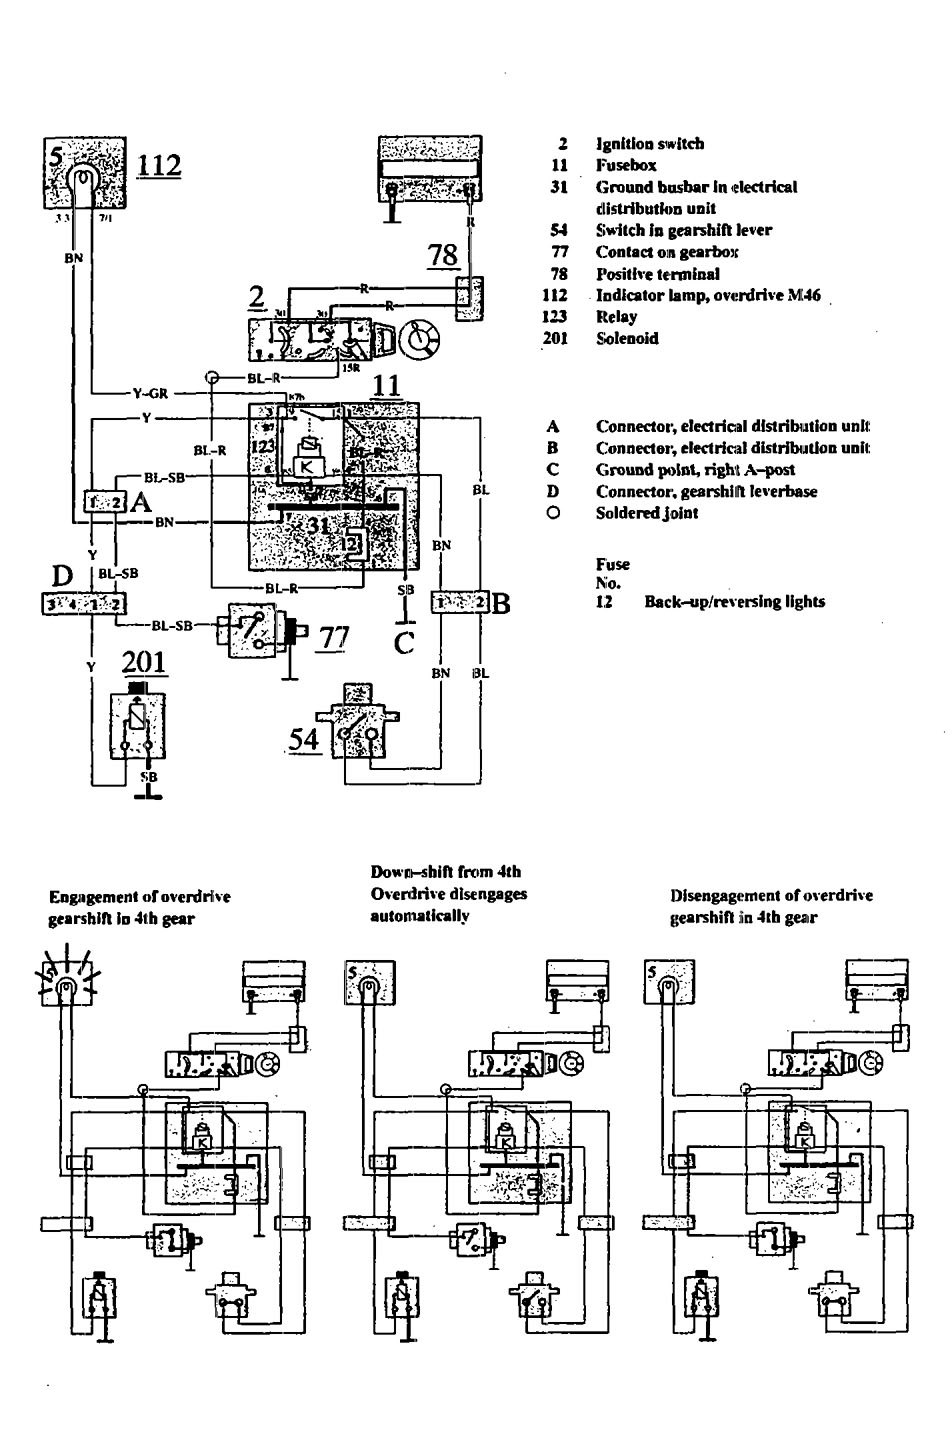 hight resolution of volvo 740 1991 wiring diagrams overdrive controls carknowledge rh carknowledge info 1991 volvo 740 radio wiring